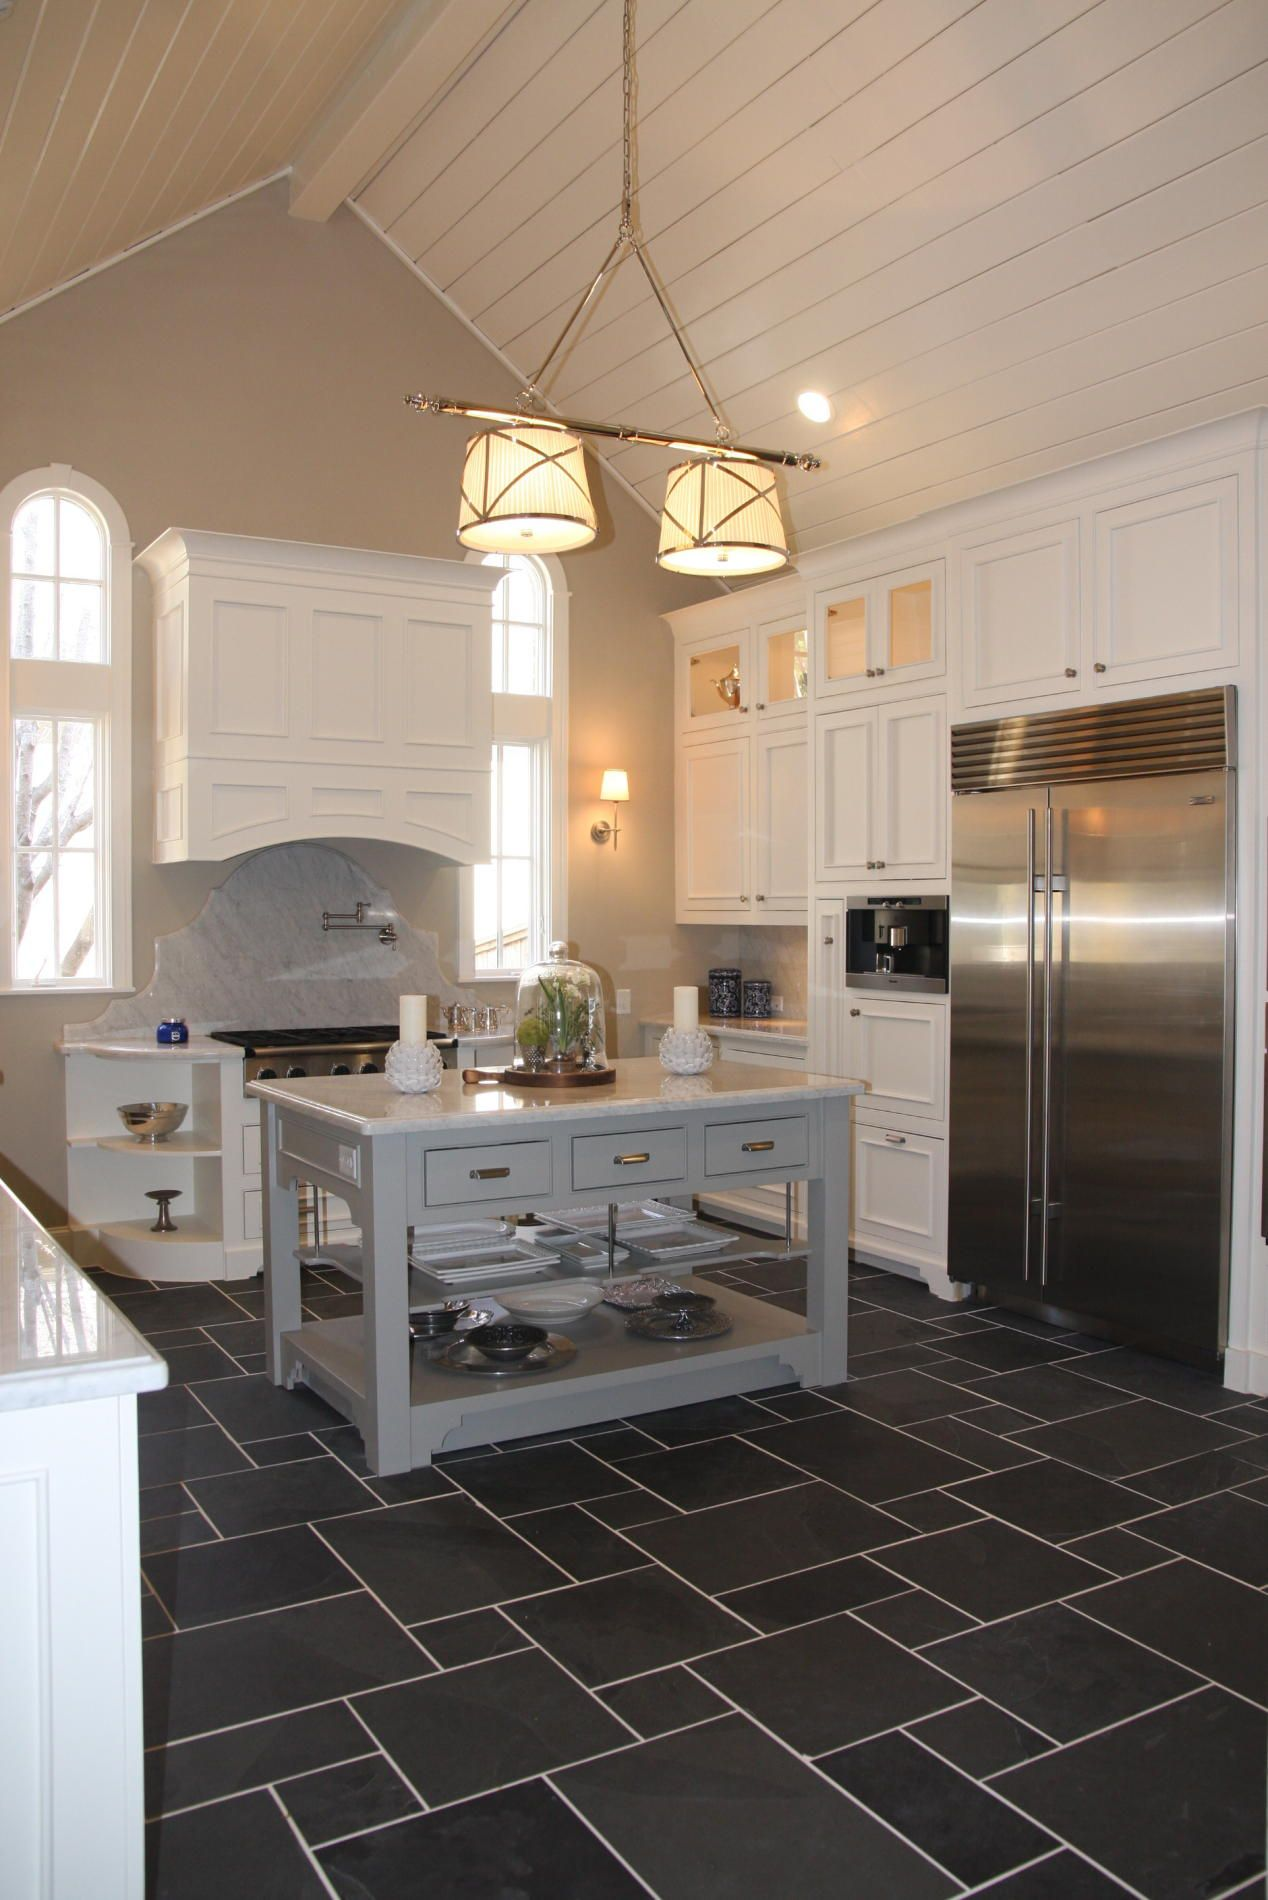 Best Grey Tile Kitchen Floor I Would Tone Down The Grout 400 x 300